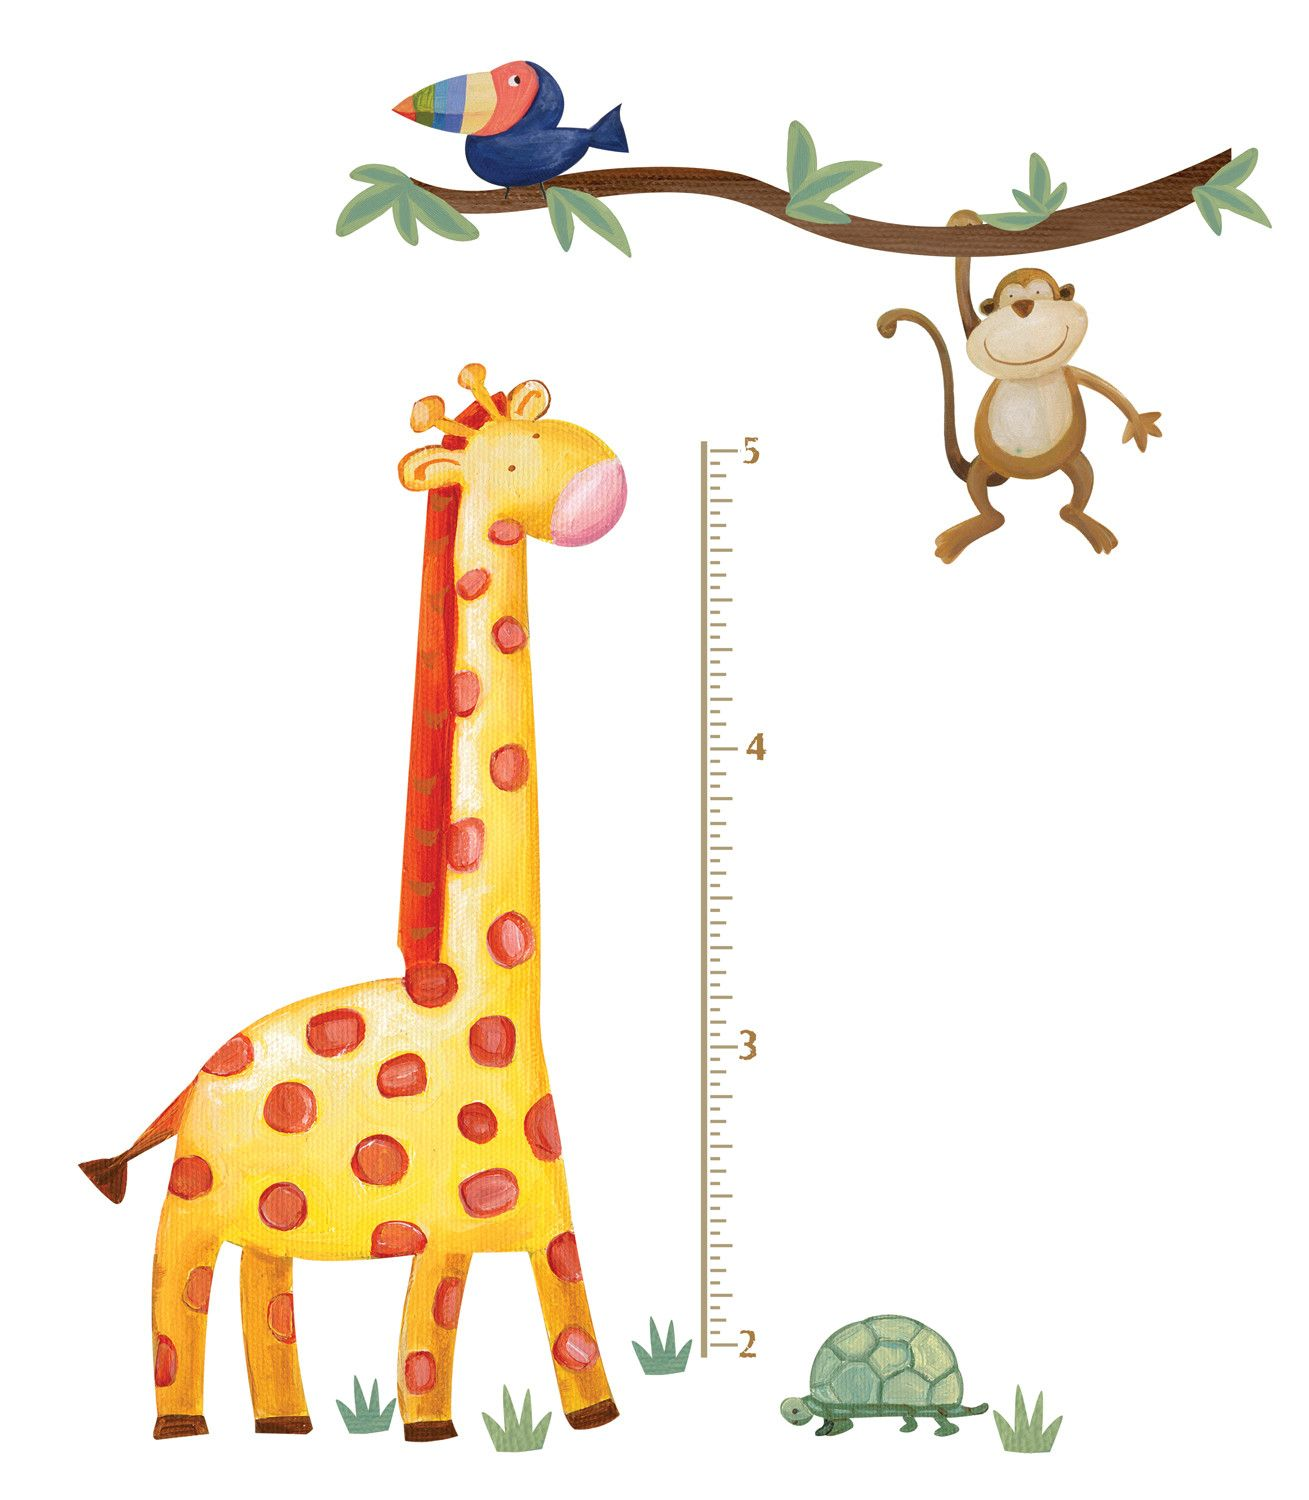 Room mates peel stick jungle adventure giraffe growth chart jungle adventure giraffe peel and stick growth chart wall decal geenschuldenfo Image collections